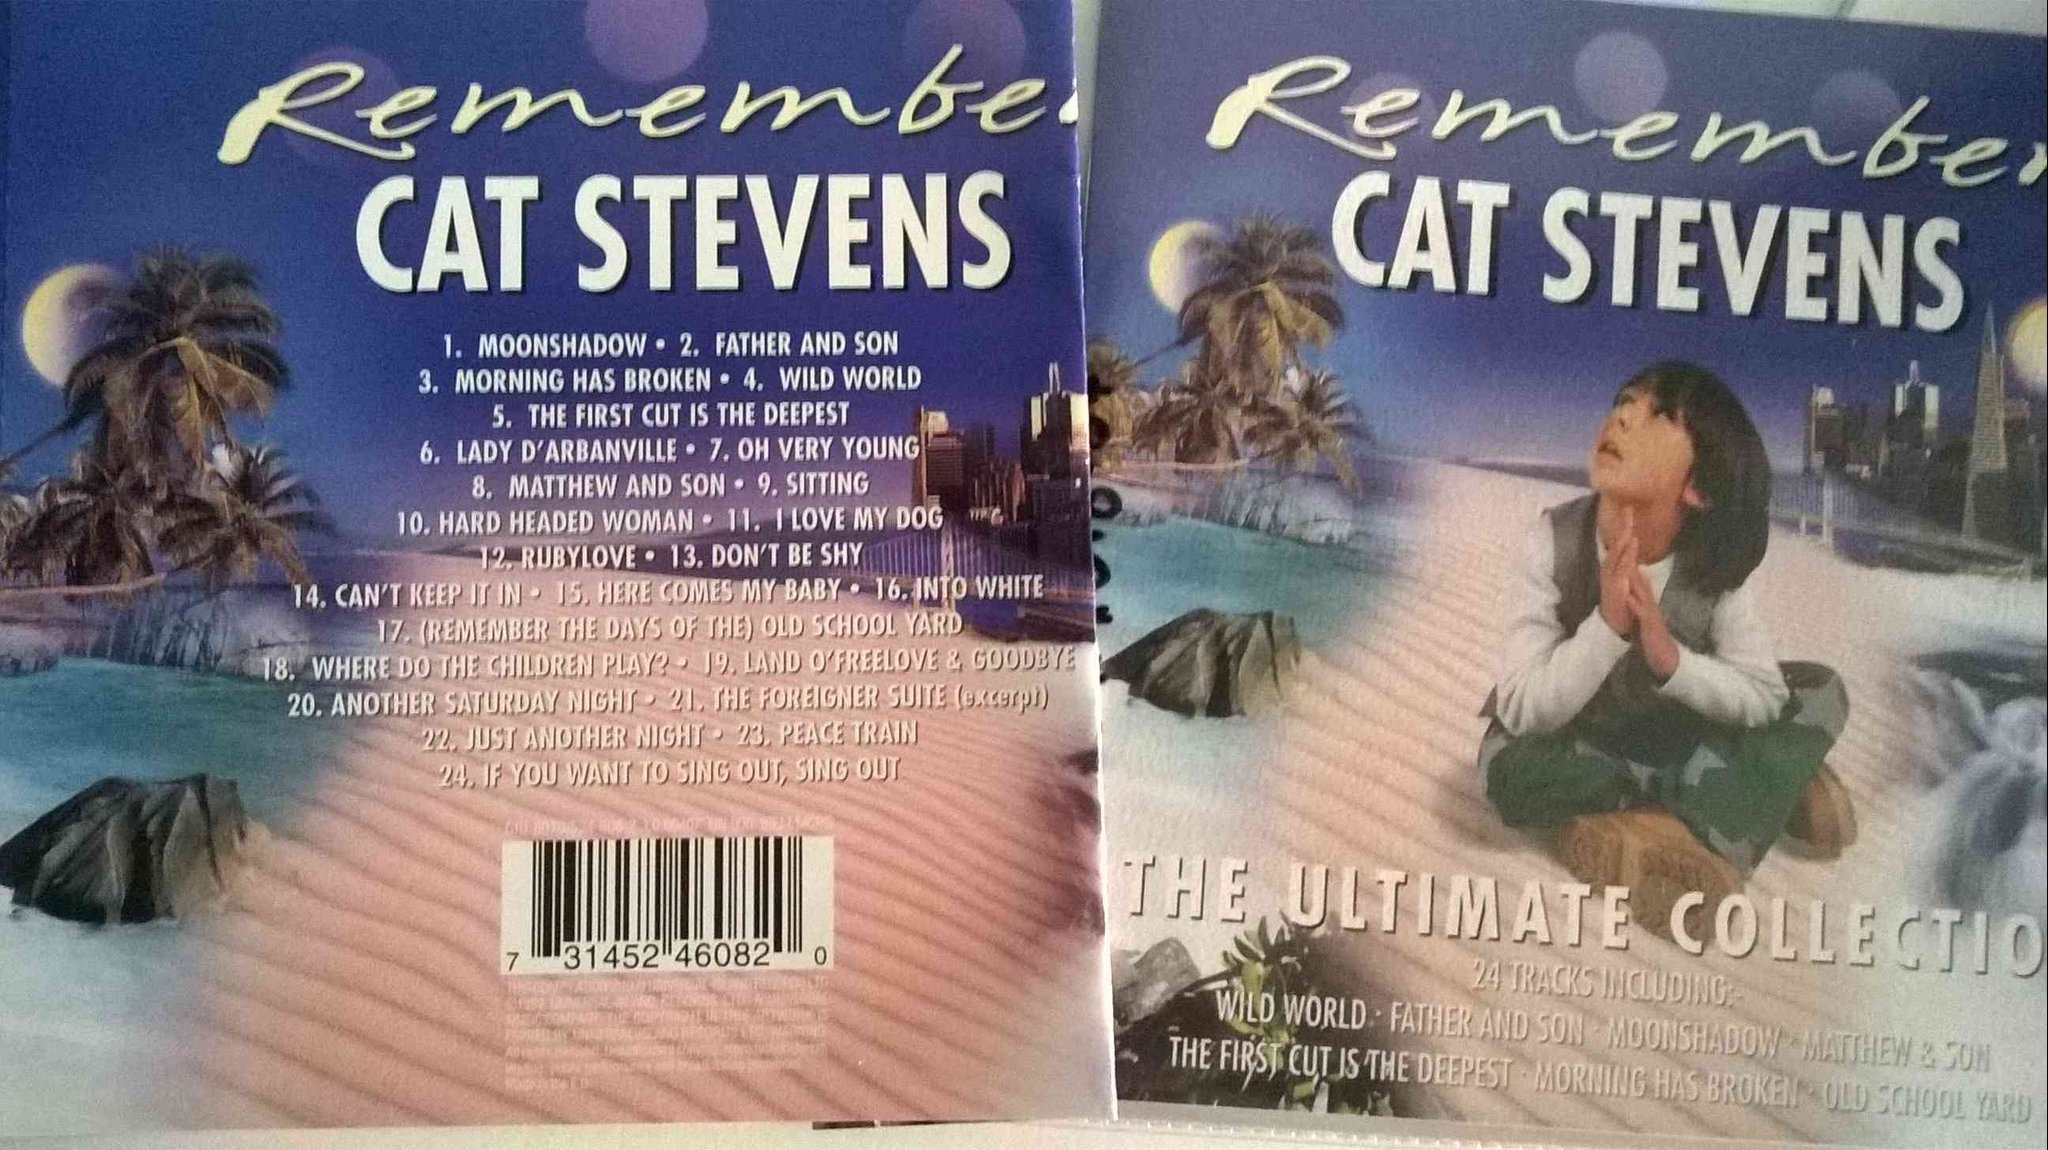 Remember Cat Stevens - The ultimate collection, single CD